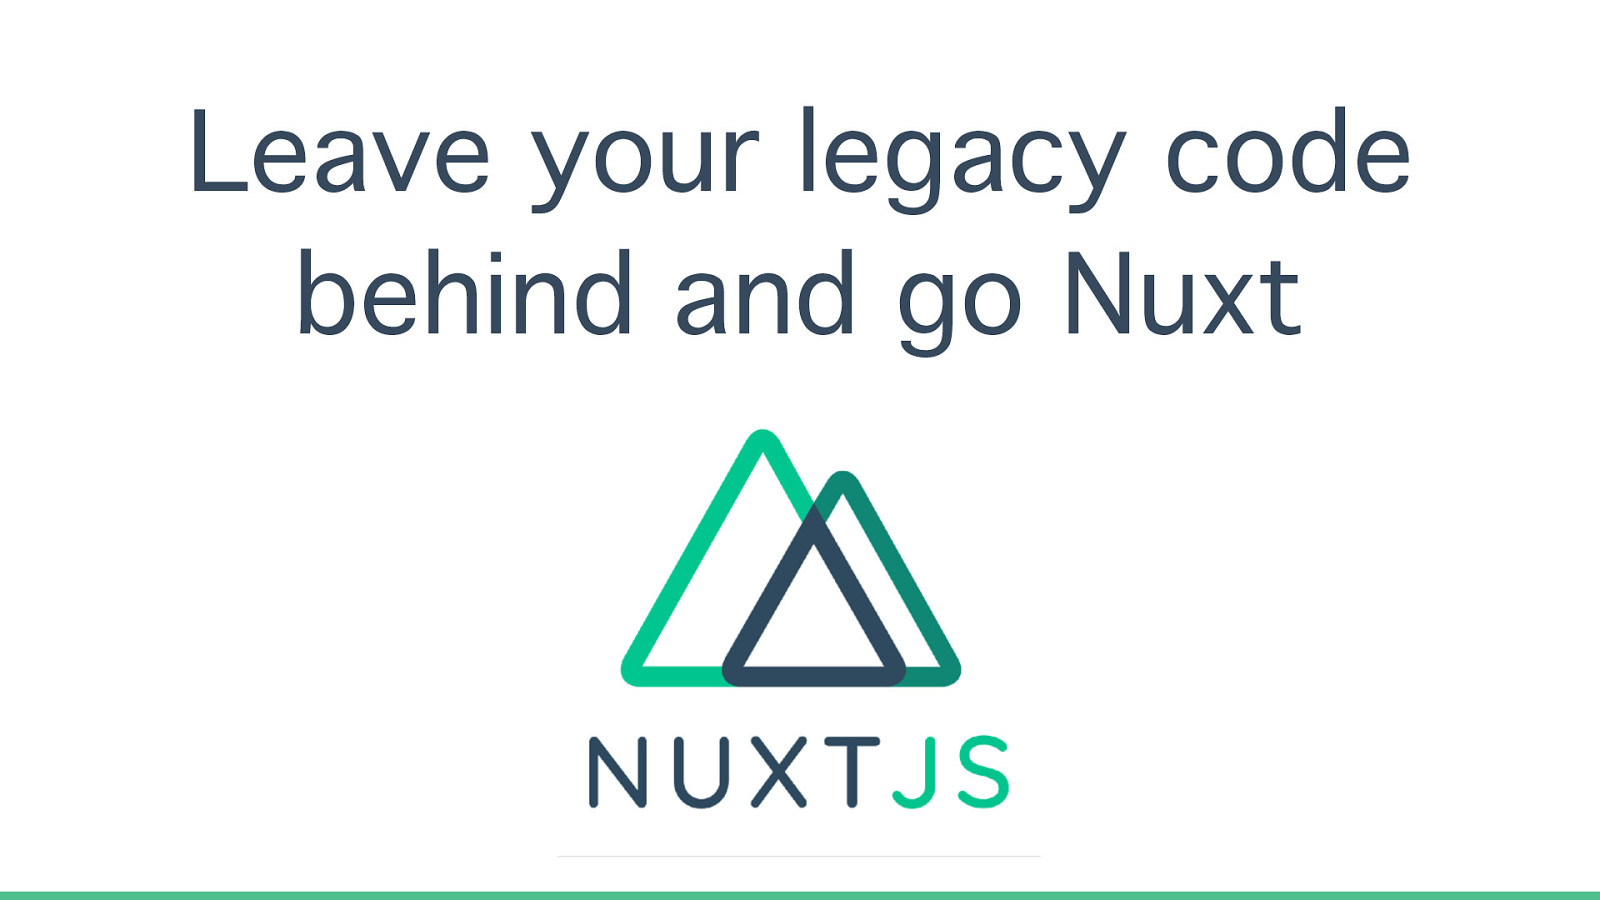 Leave your legacy code behind and go Nuxt